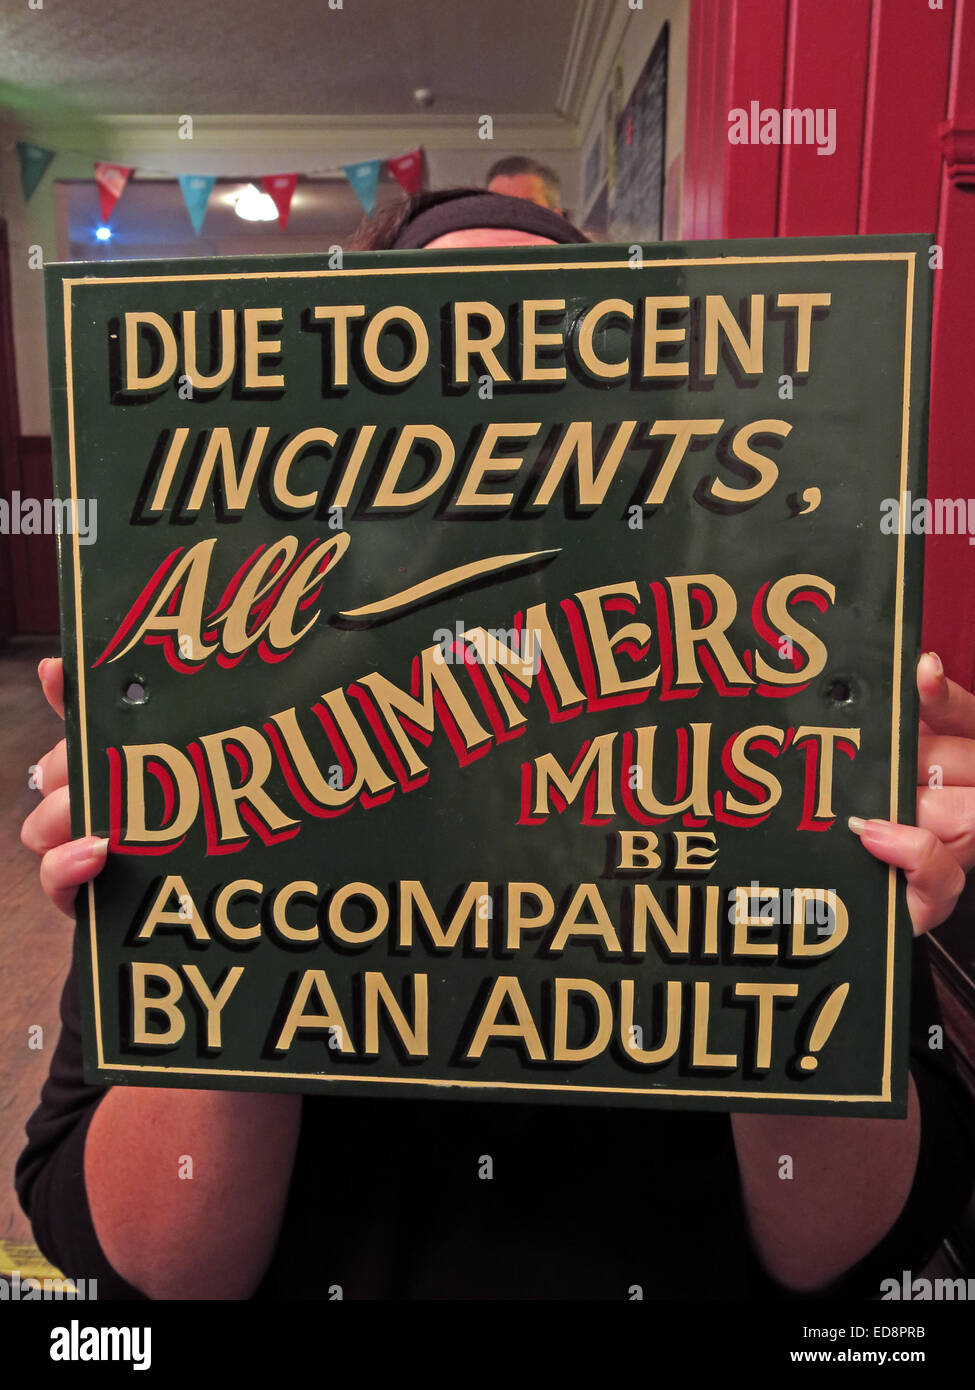 Sign Due To recent Incidents All Drummers Must be Accompanied by an adult! - Stock Image